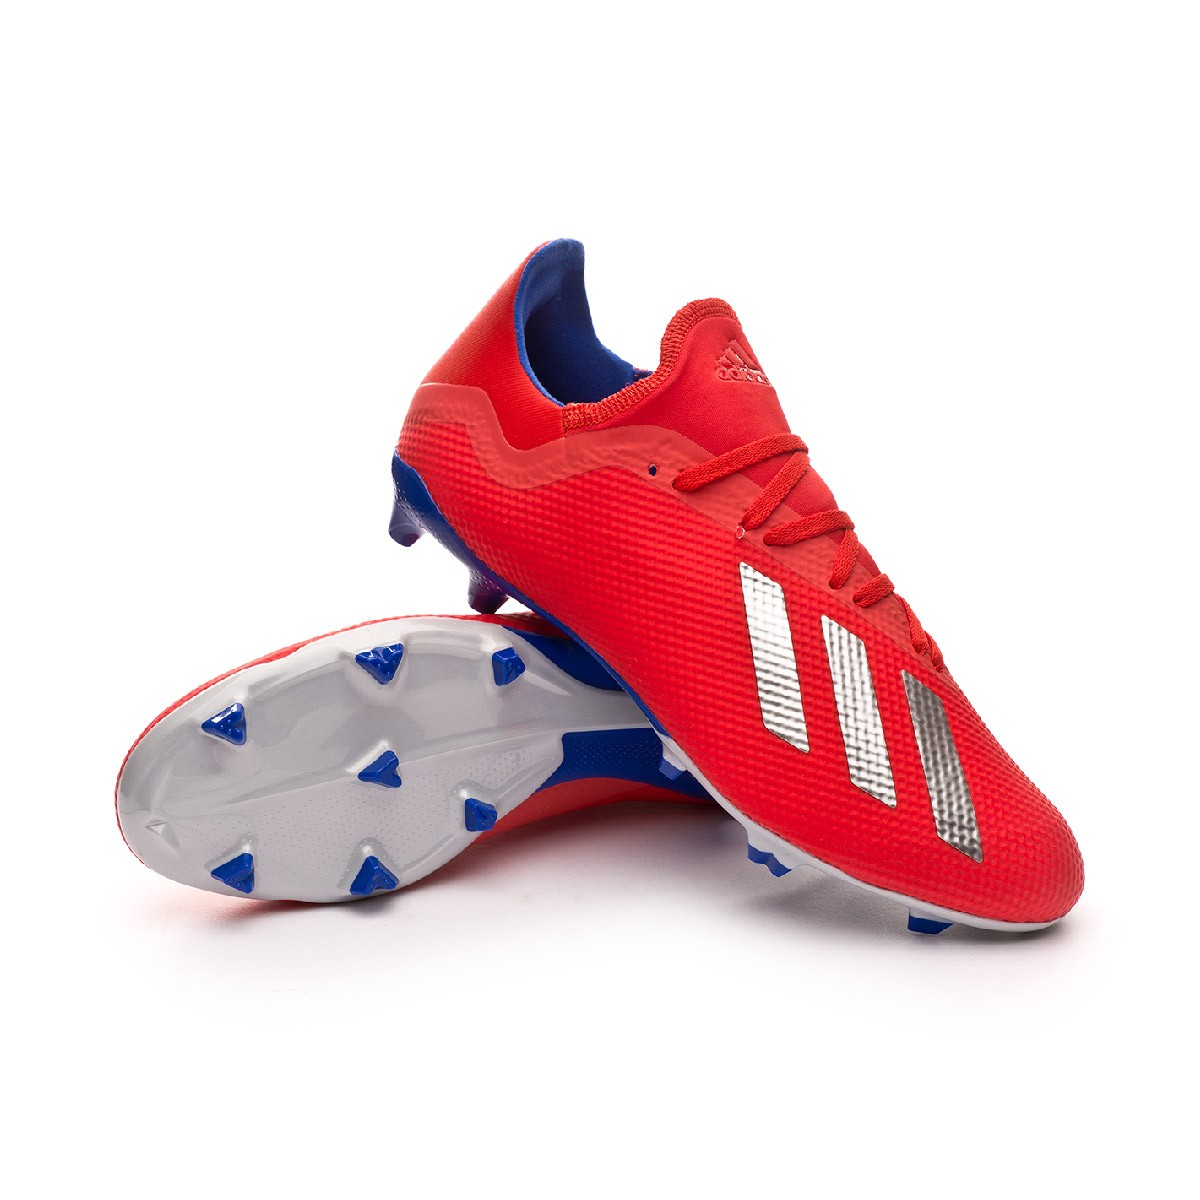 adidas 18.3 x fg 60% di sconto sglabs.it